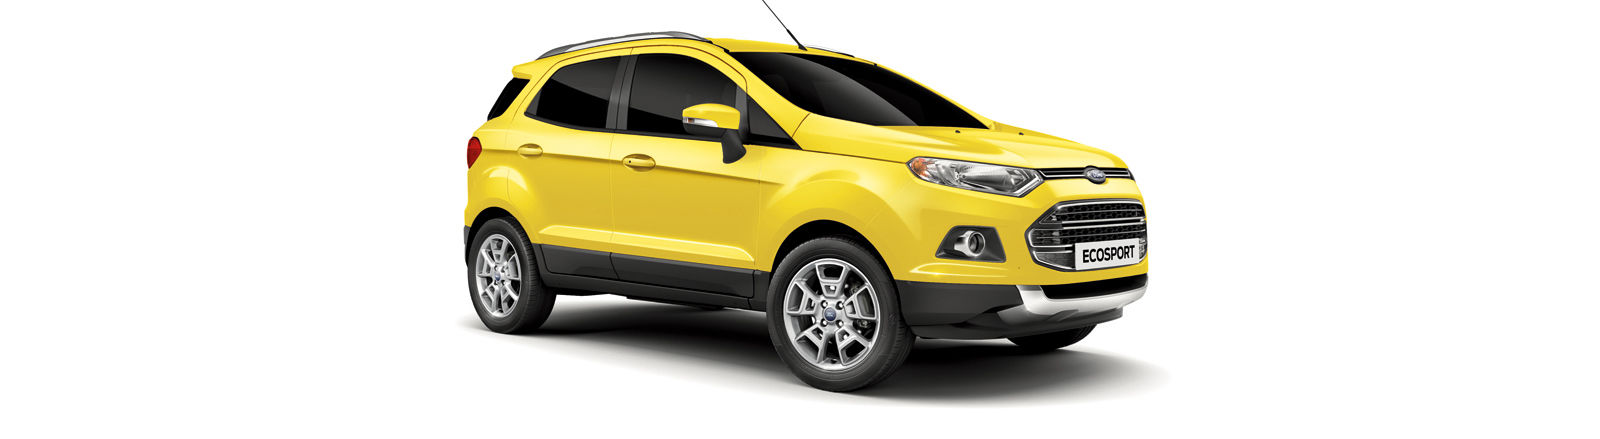 This Is The Only Free Colour For The Ecosport And Its A Pretty Bright Lemon That Will Certainly Stand Out But May Not Be To Everyones Tastes